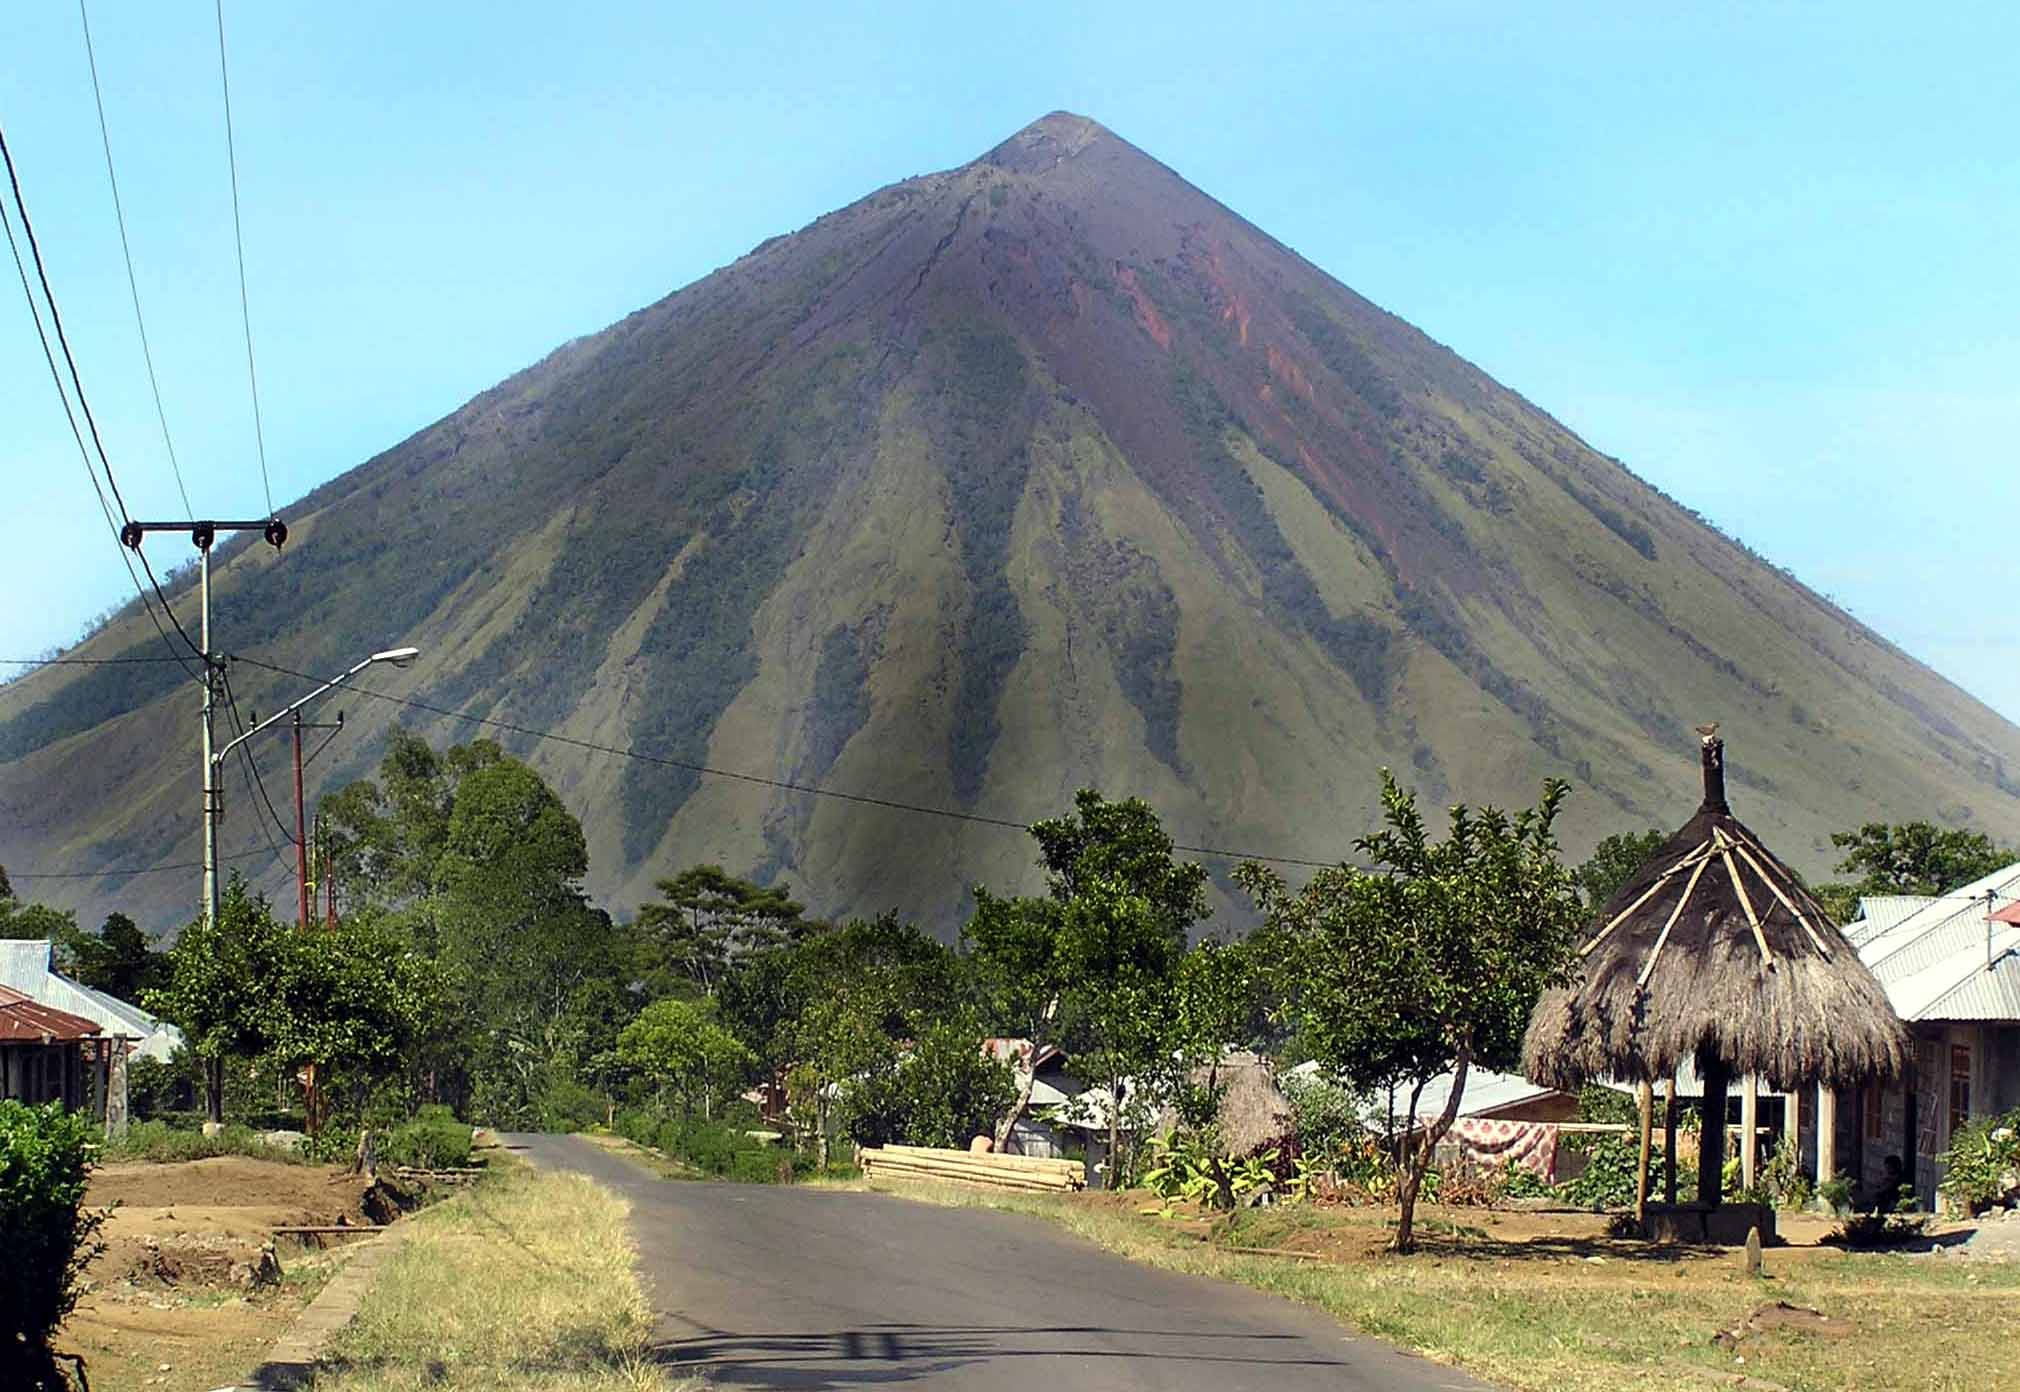 Bajawa Indonesia  city images : Mount Inerie with its beautiful, harmonic pyramid shape, is an eye ...